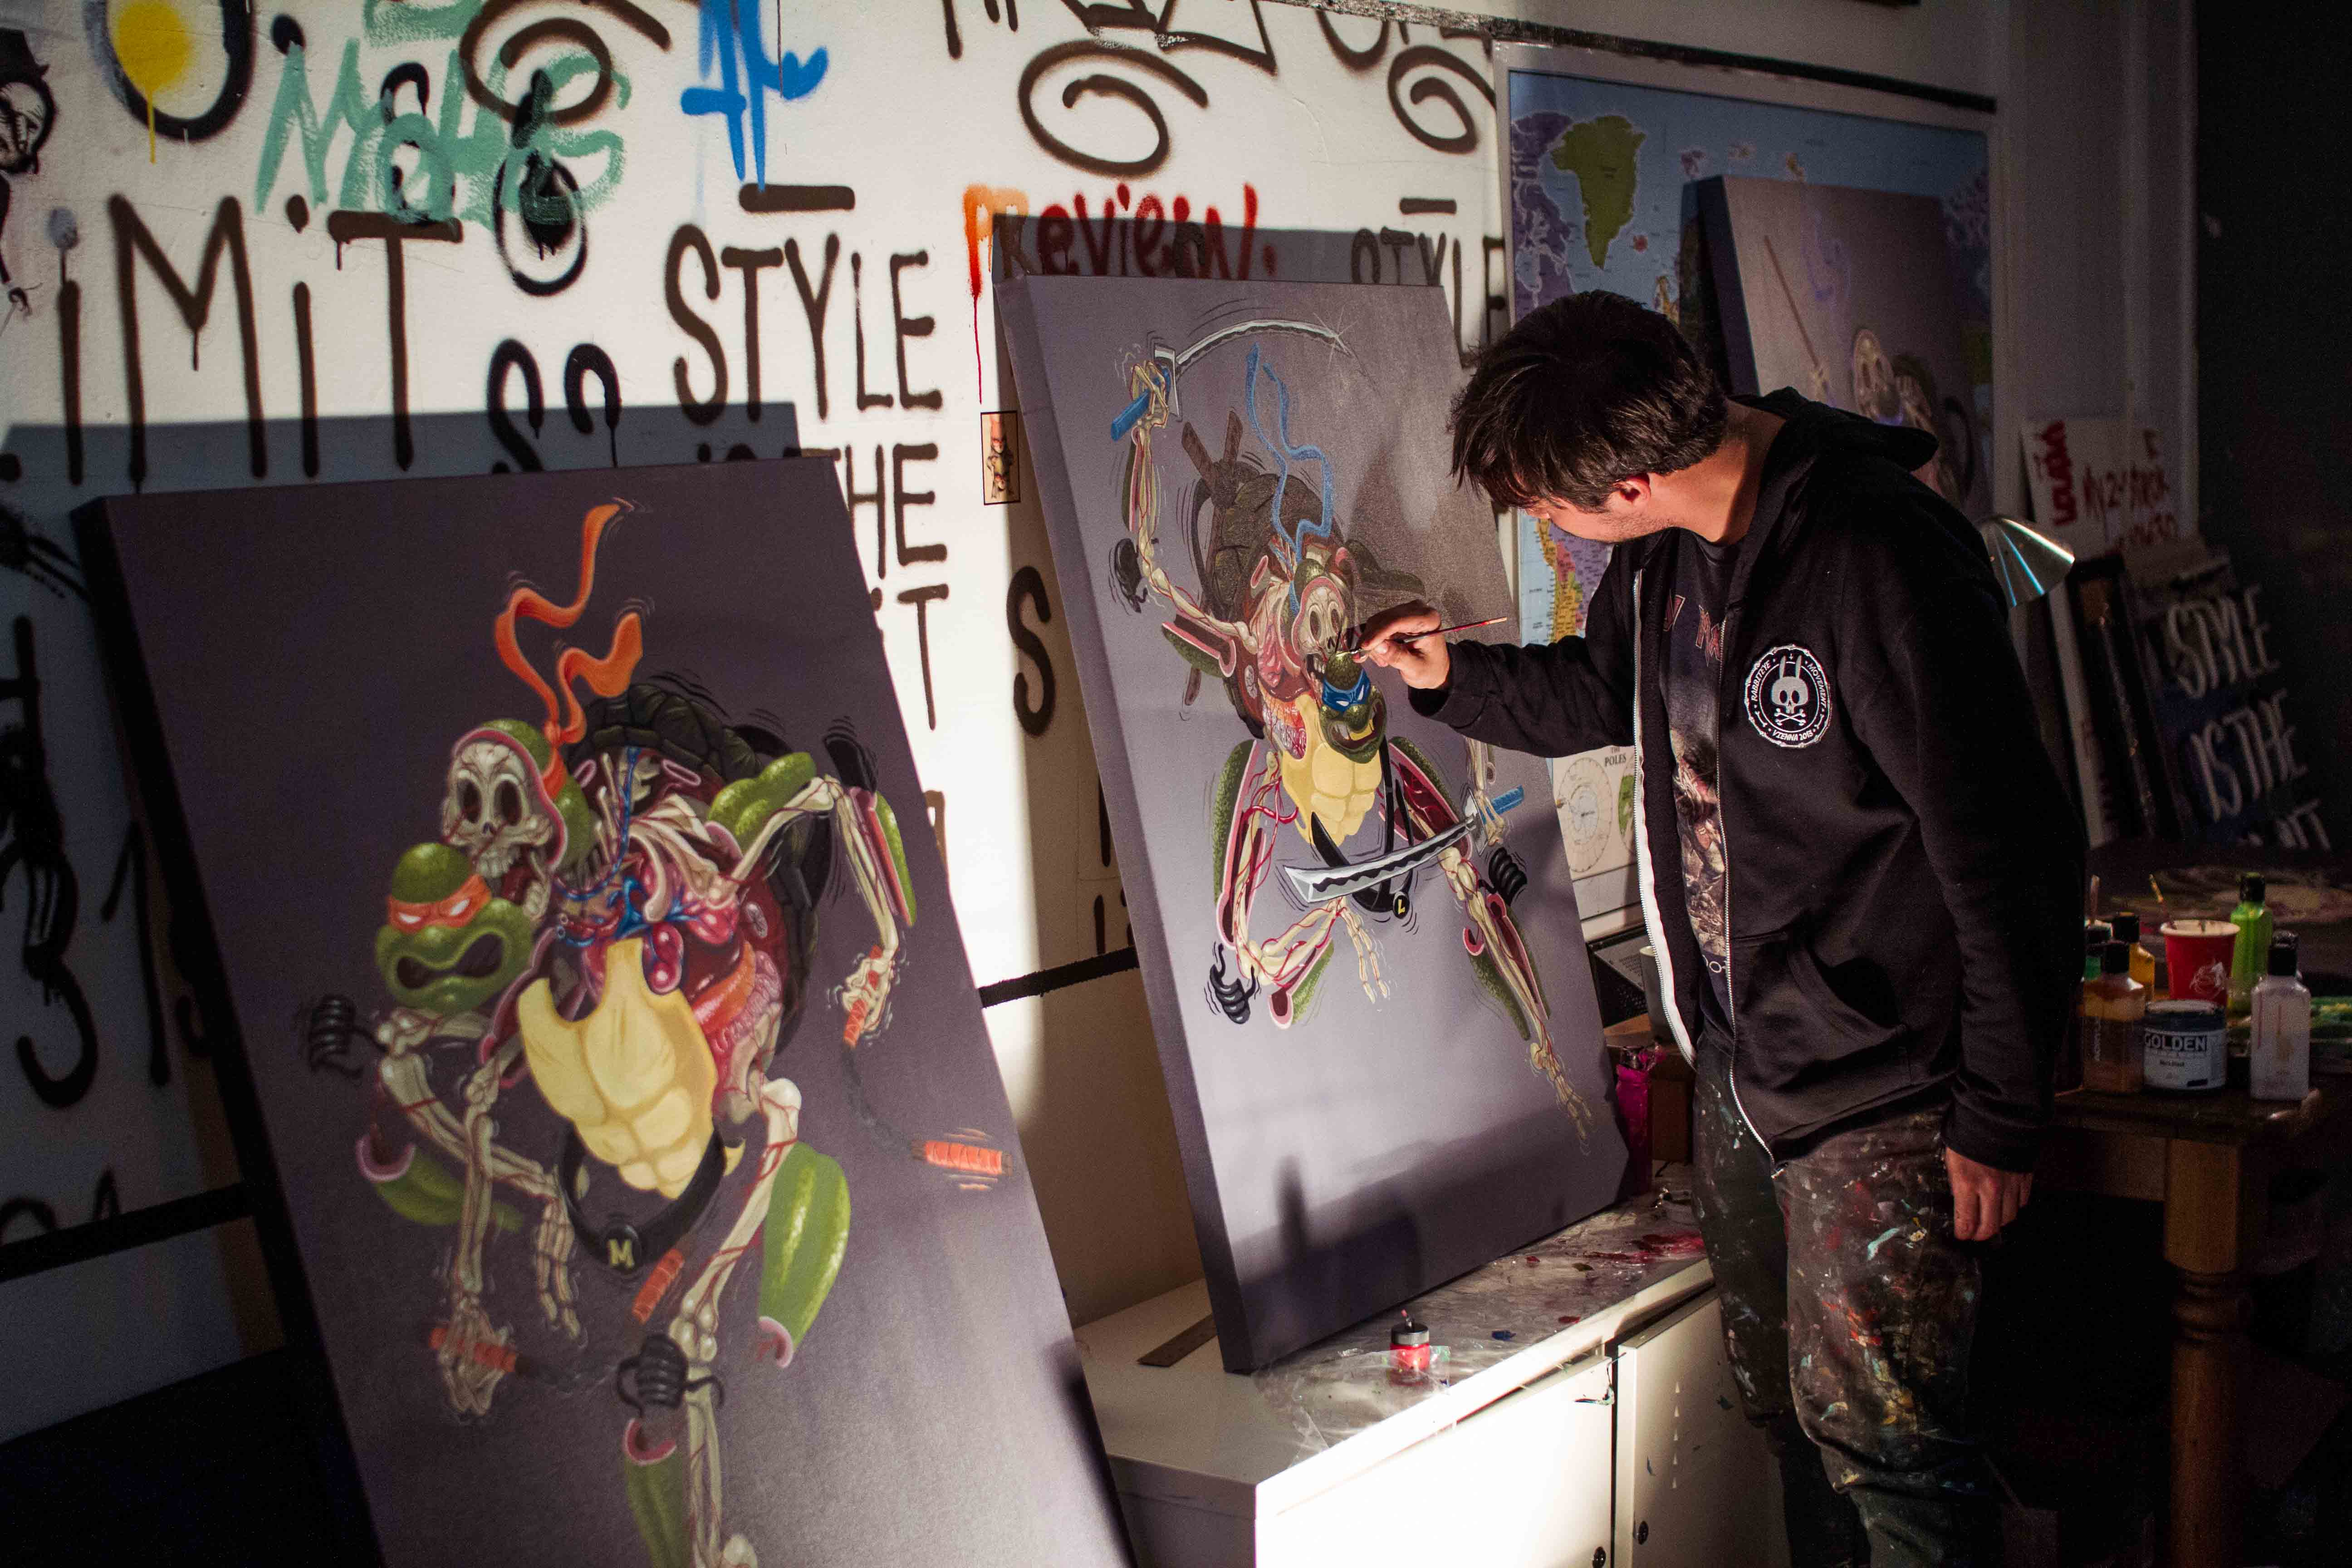 An Interview and San Francisco Visit with Nychos: Nychoss.jpg